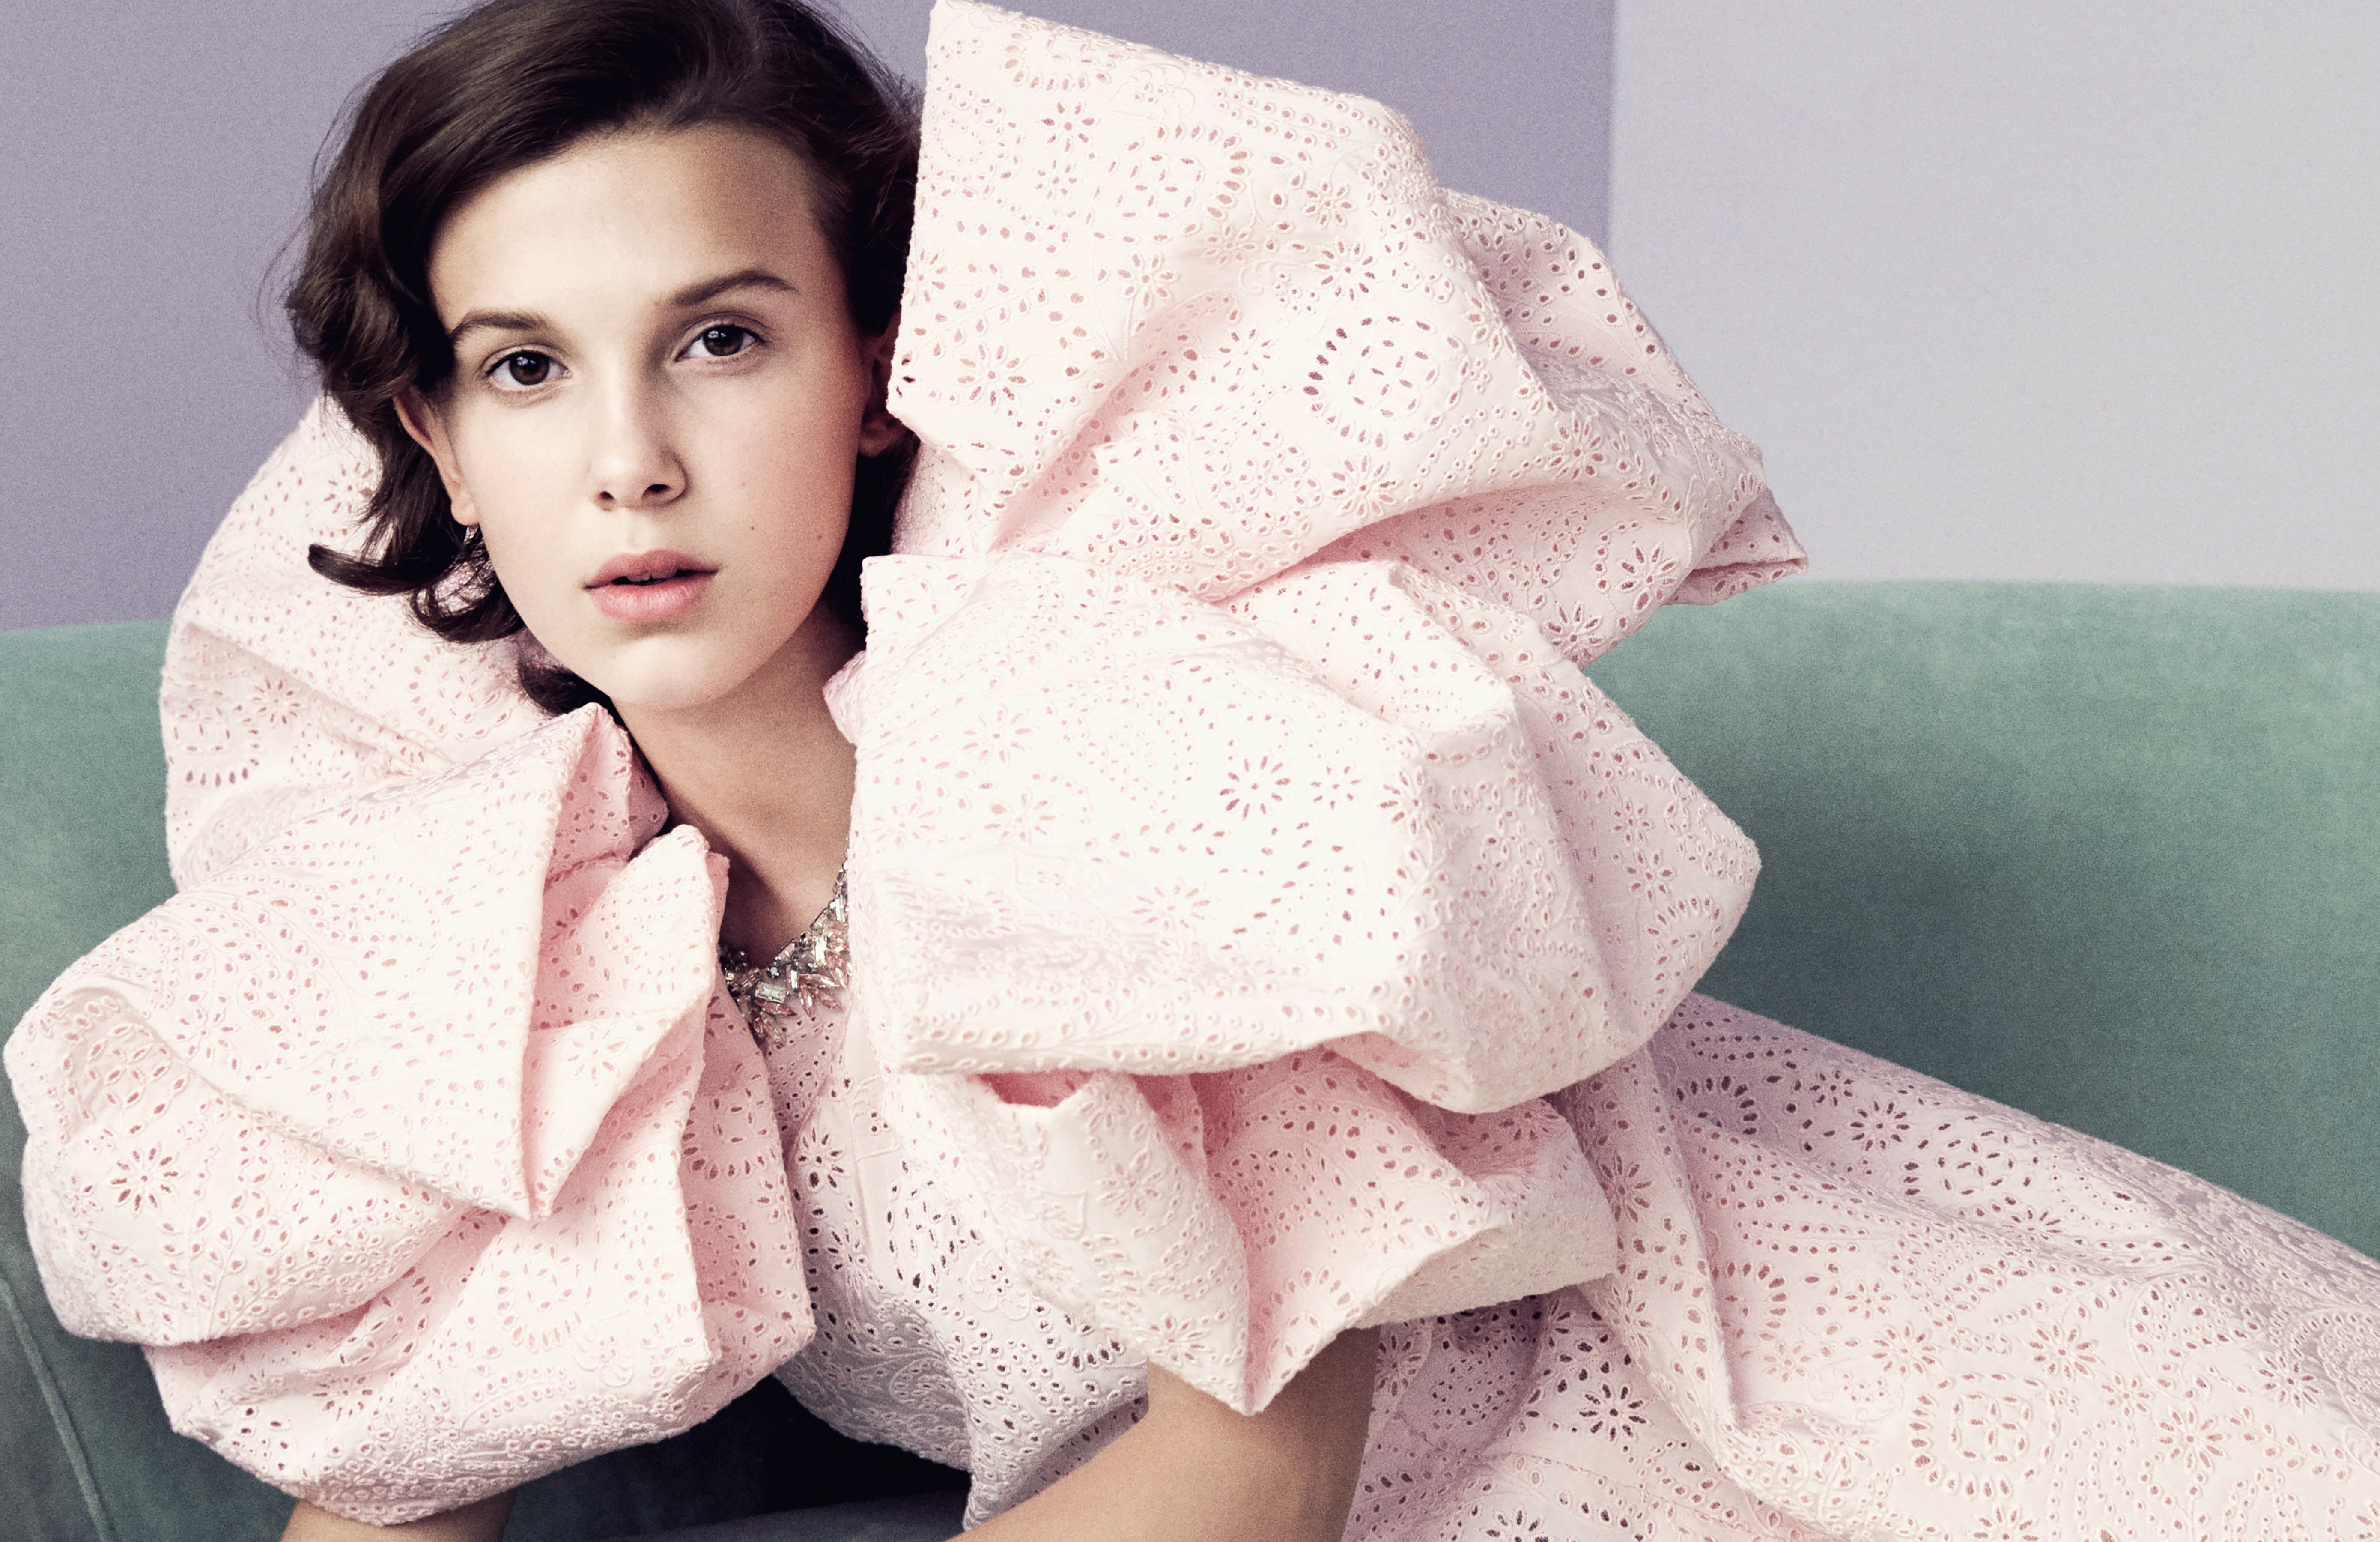 Millie Bobby Brown Vogue 2018, HD Celebrities, 4k Wallpapers, Image